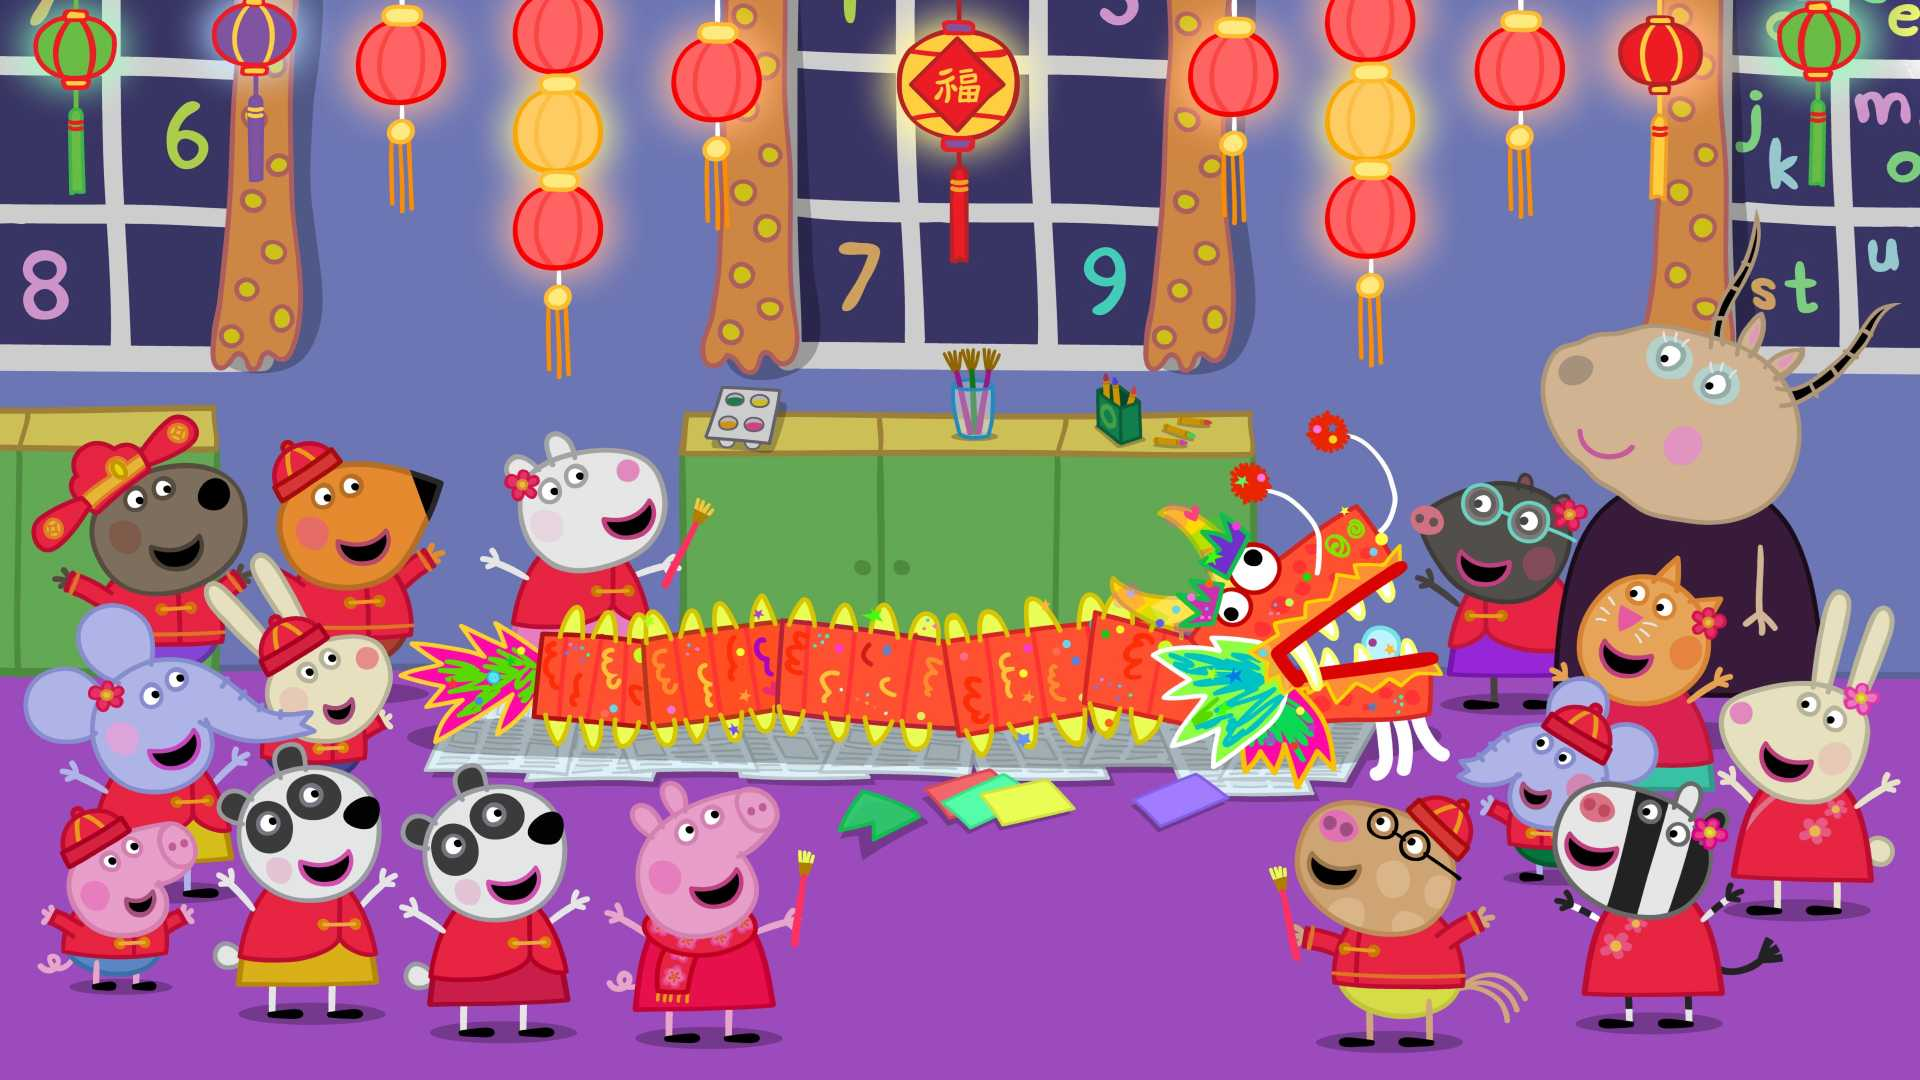 Peppa Pig Chinese New Year Peppasode Tues Feb 5 At 9am On